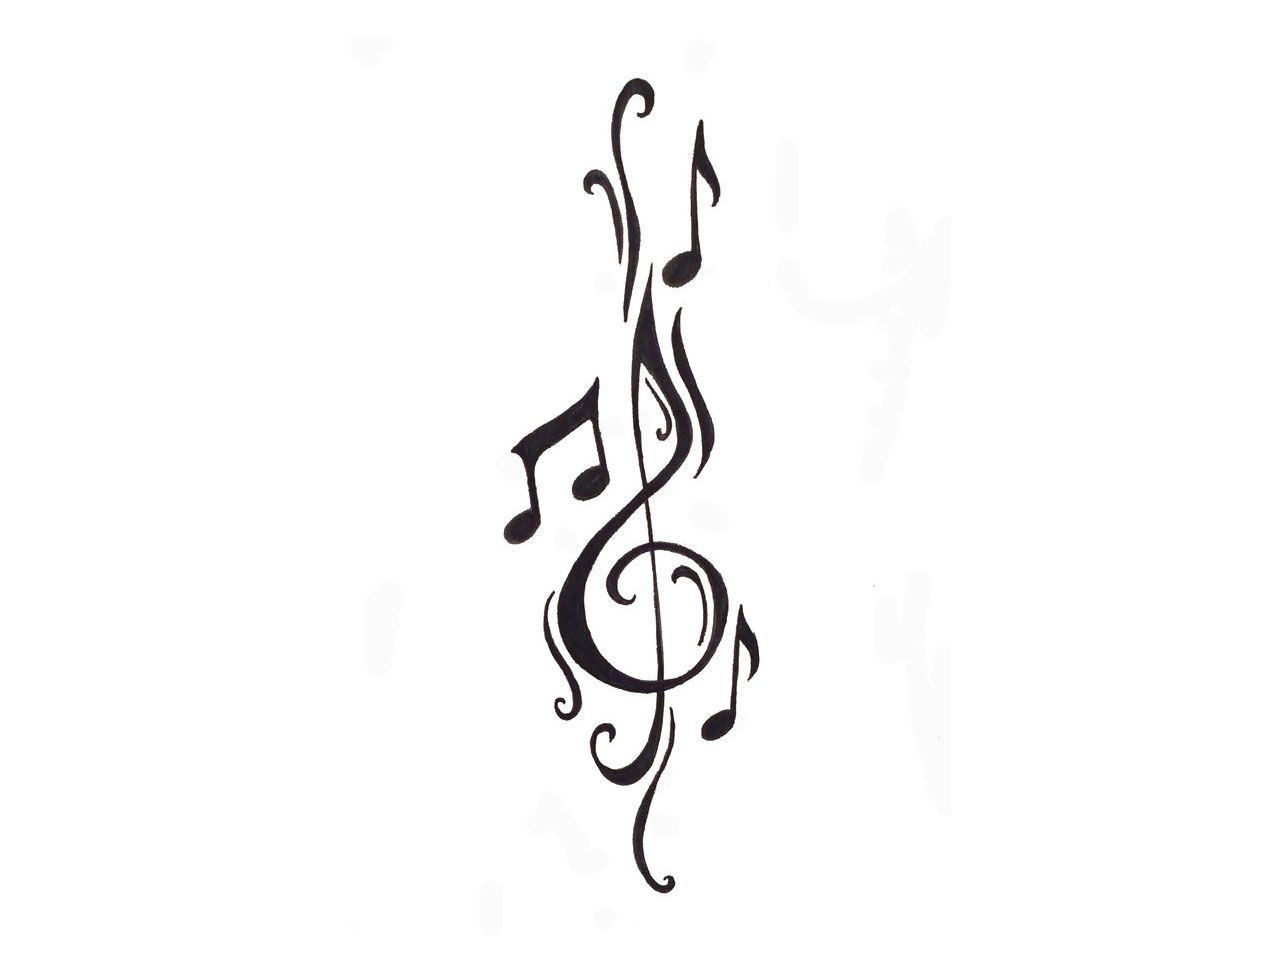 clef and notes tattoo love this idea think i might get